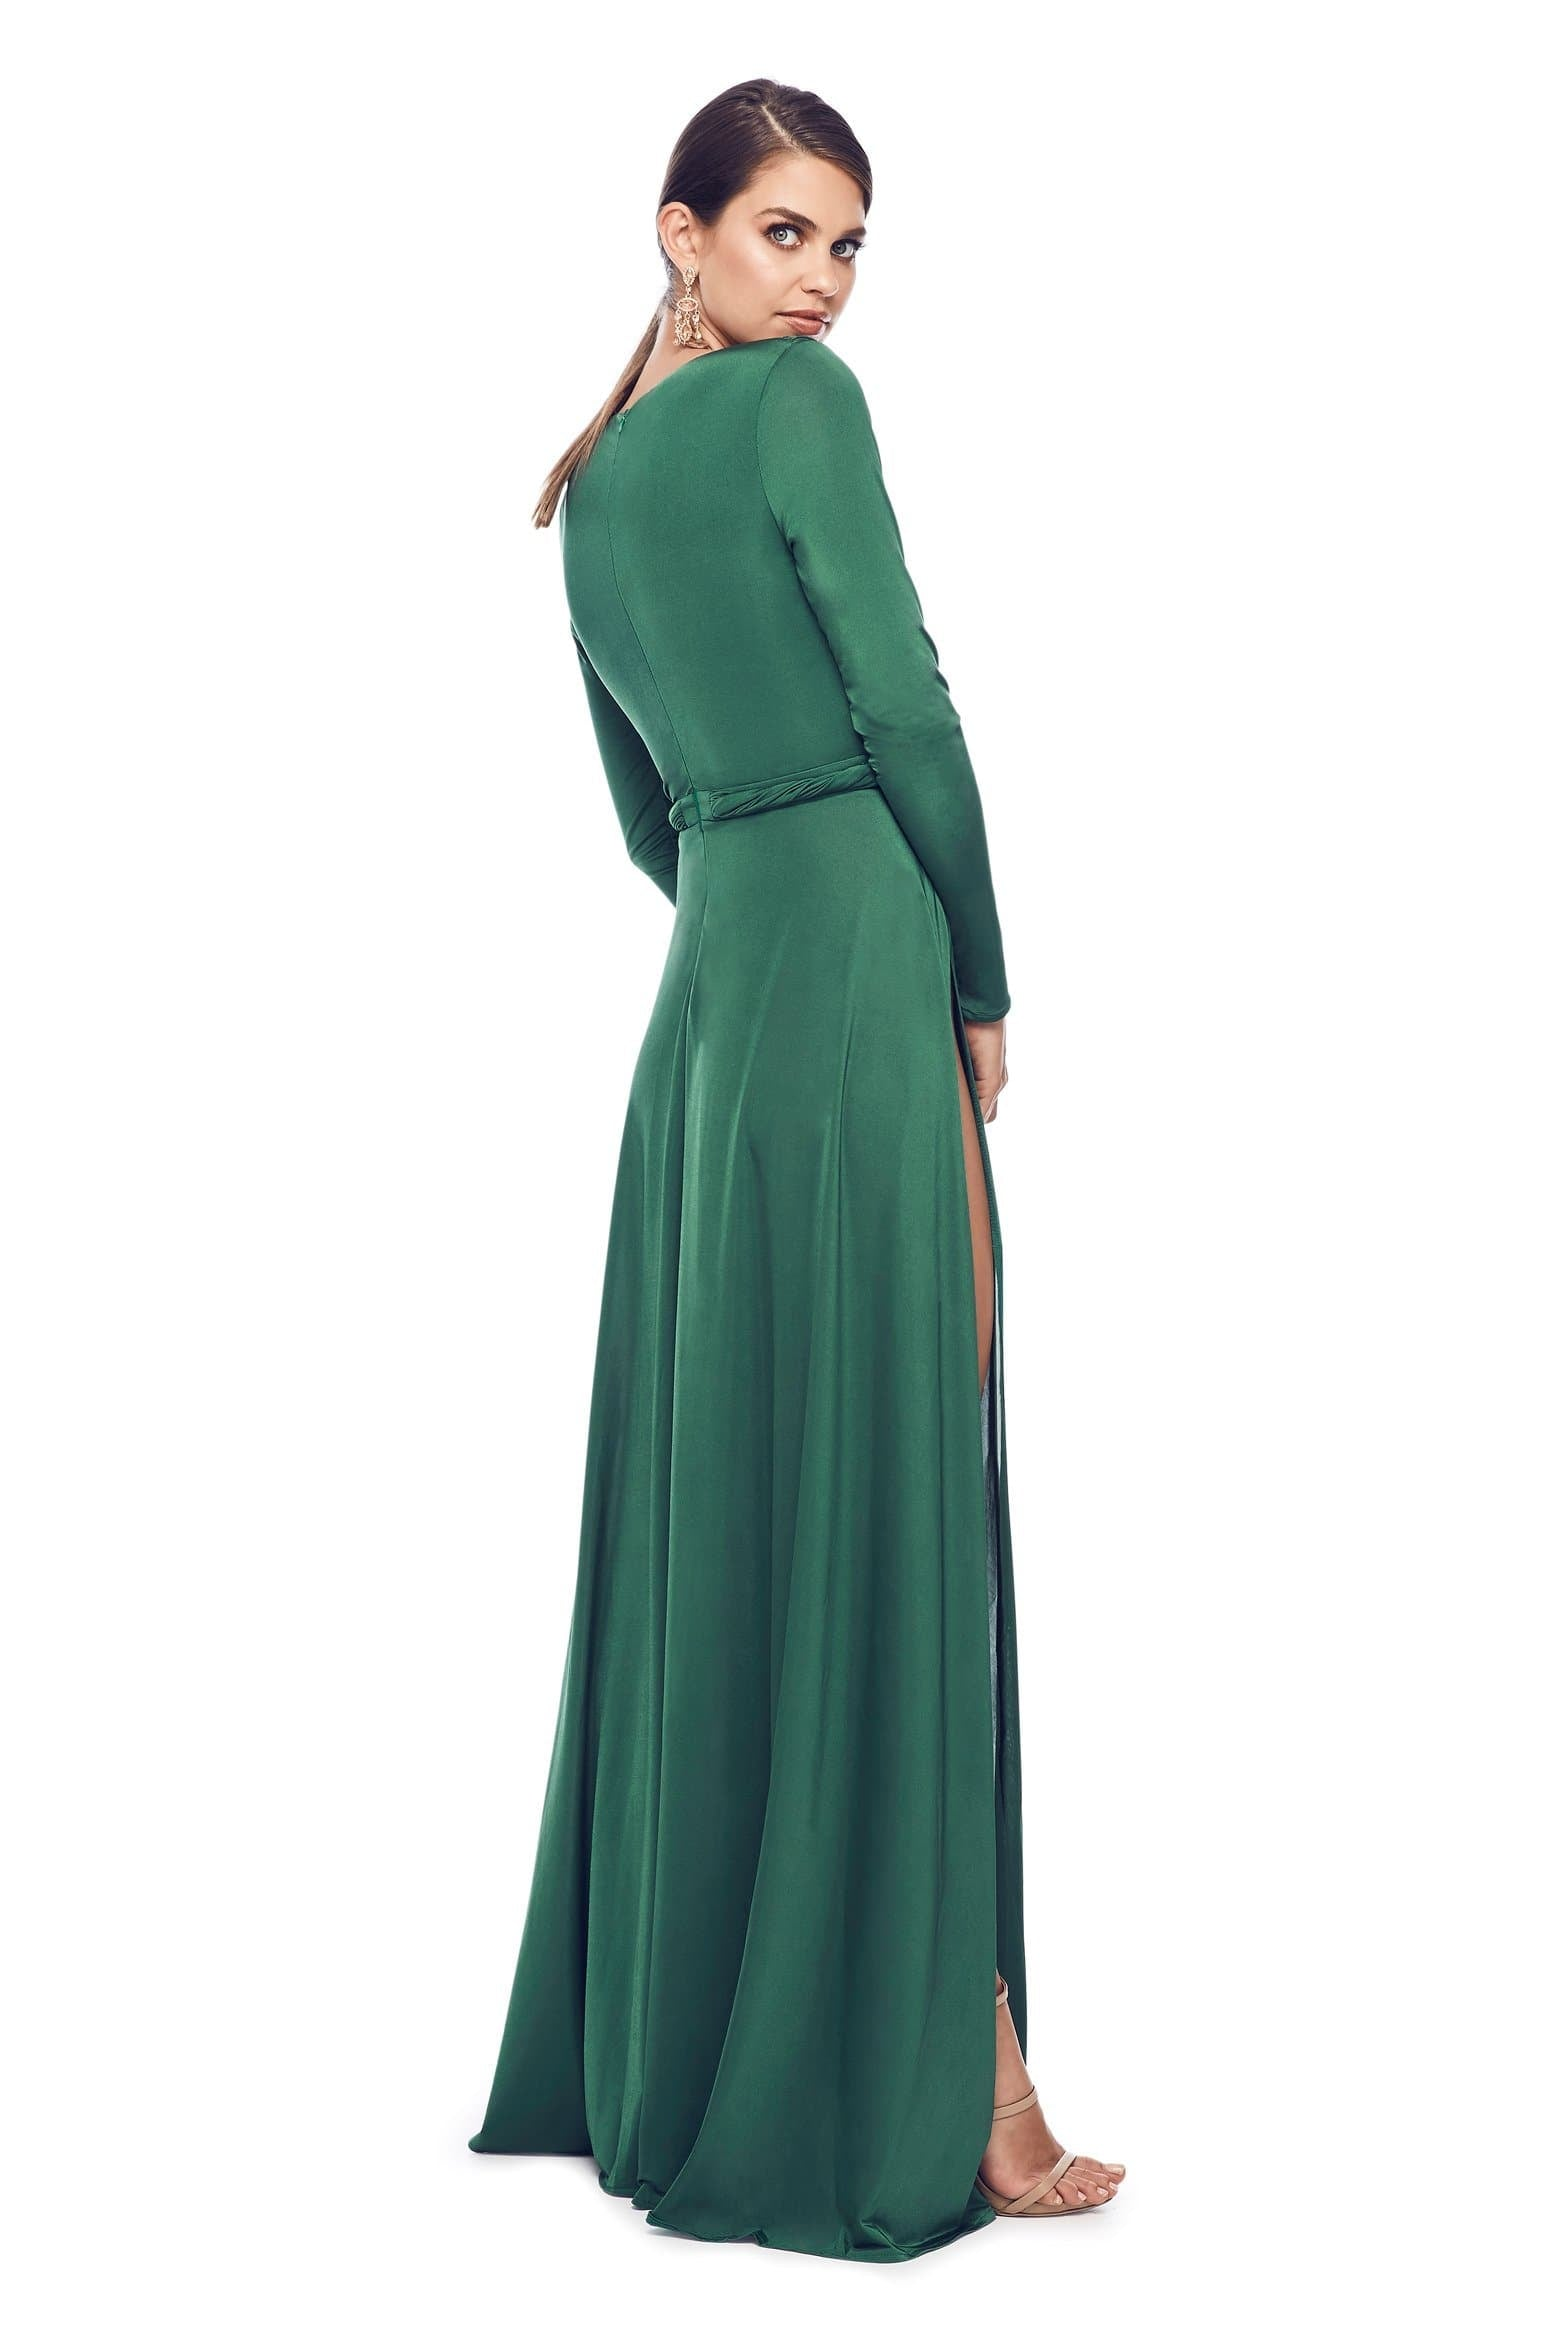 39b6c2a9b1c9 Sahara - Emerald Jersey Long Sleeve Gown with Deep Plunge Neckline